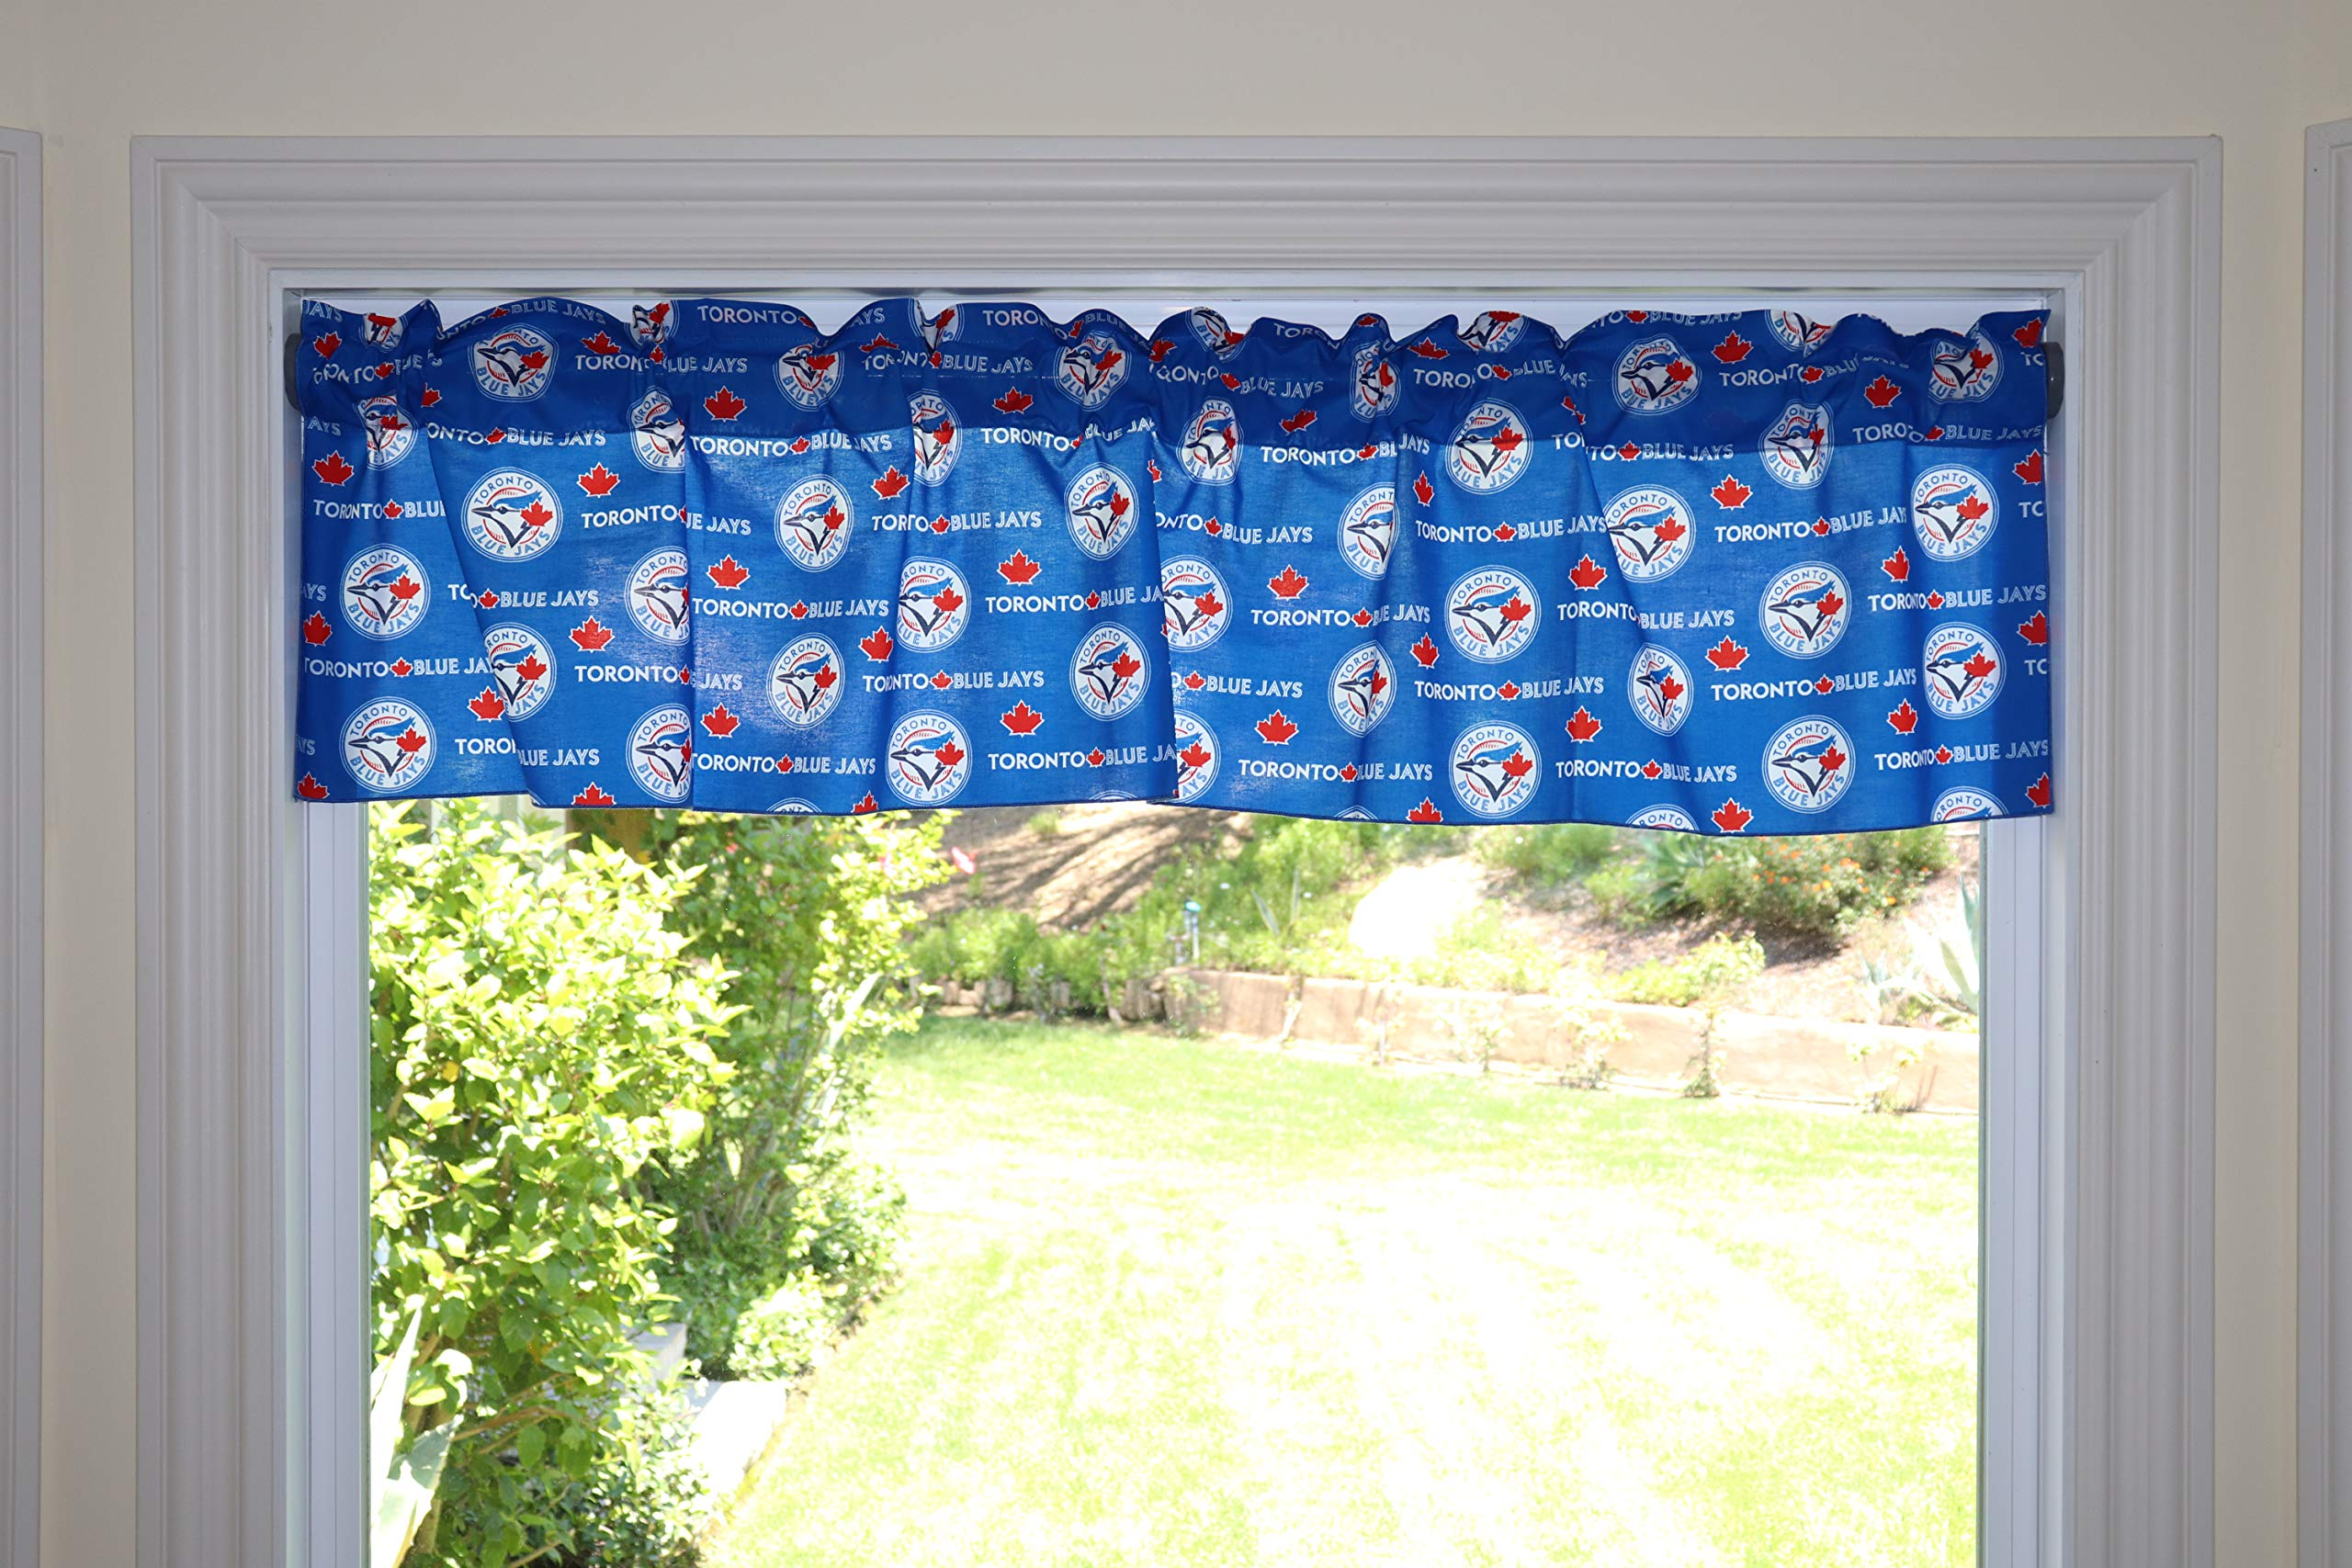 lovemyfabric Baseball Cotton Window Valance 100% Cotton Print MLB Sports Team Toronto Blue Jays Events Kitchen Dining Room Bedroom Window Decor (58'' Wide) (14'' Tall) by lovemyfabric